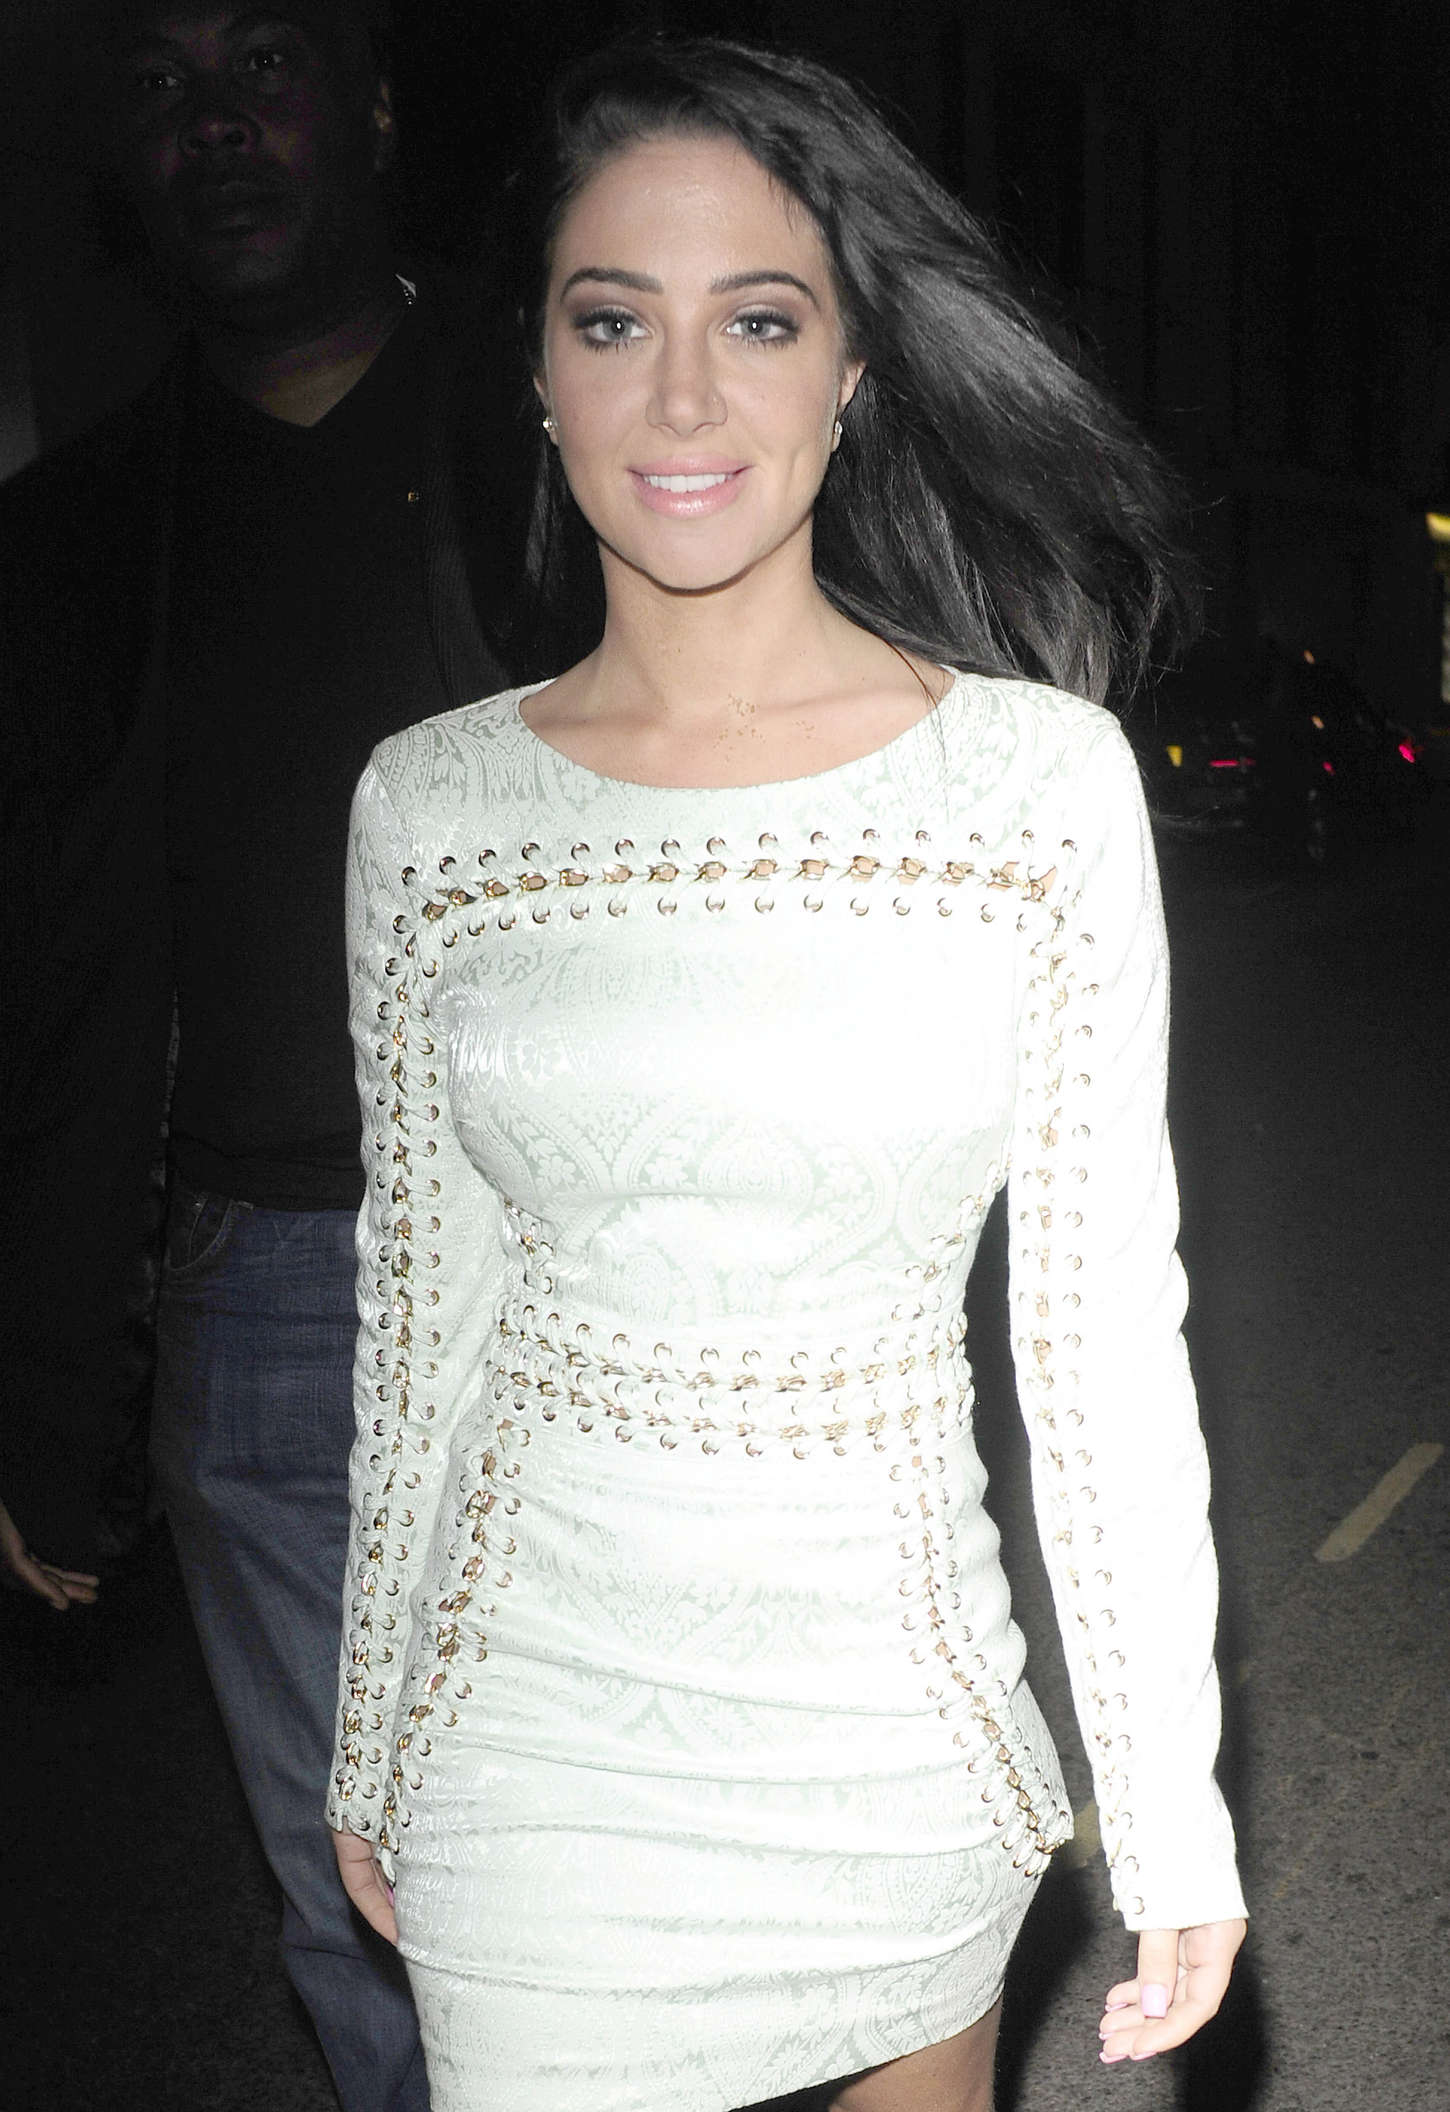 Tulisa Contostavlos 2015 : Tulisa Contostavlos in Tight Mini Dress -02